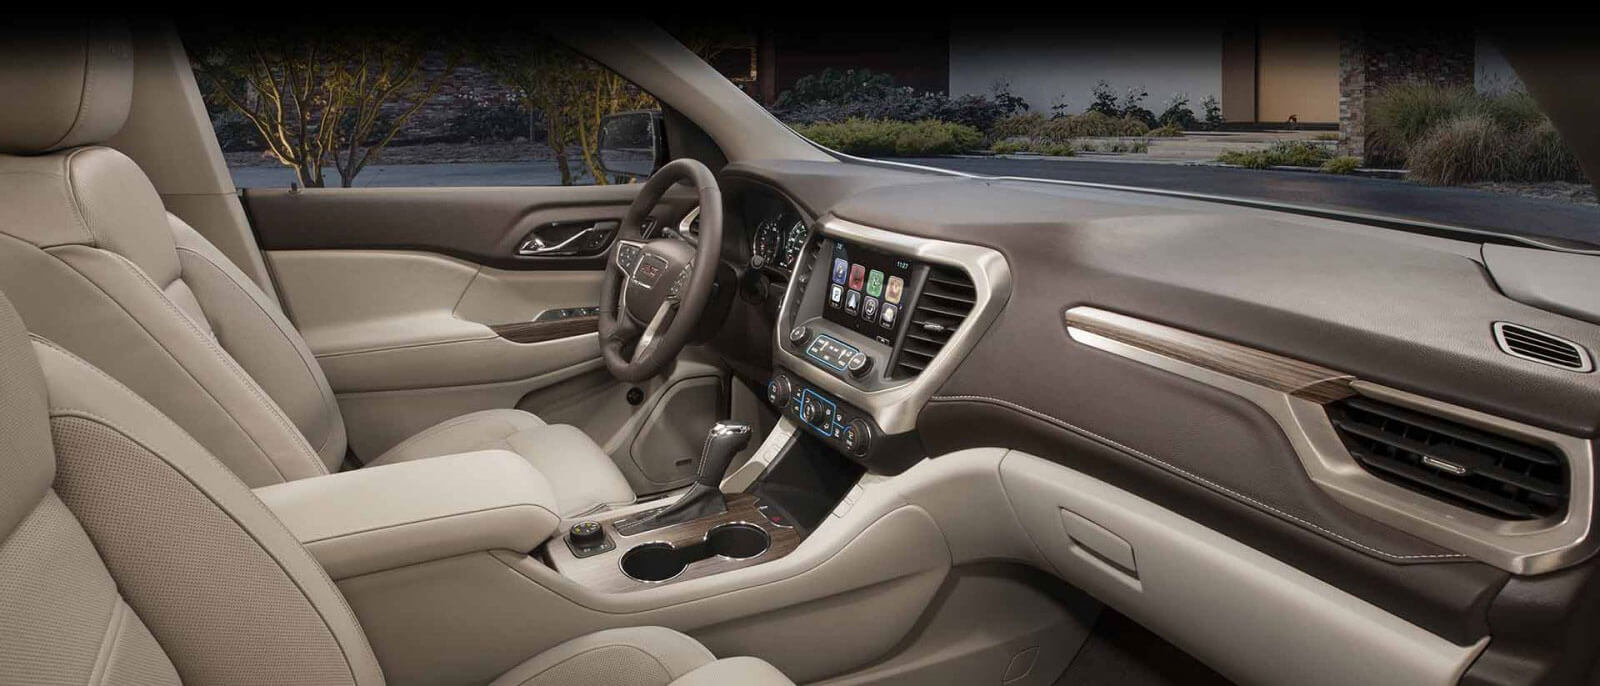 The 2017 Gmc Acadia At Westridge Buick In Lloydminster 6 Speaker Wiring Diagram Cars Chat